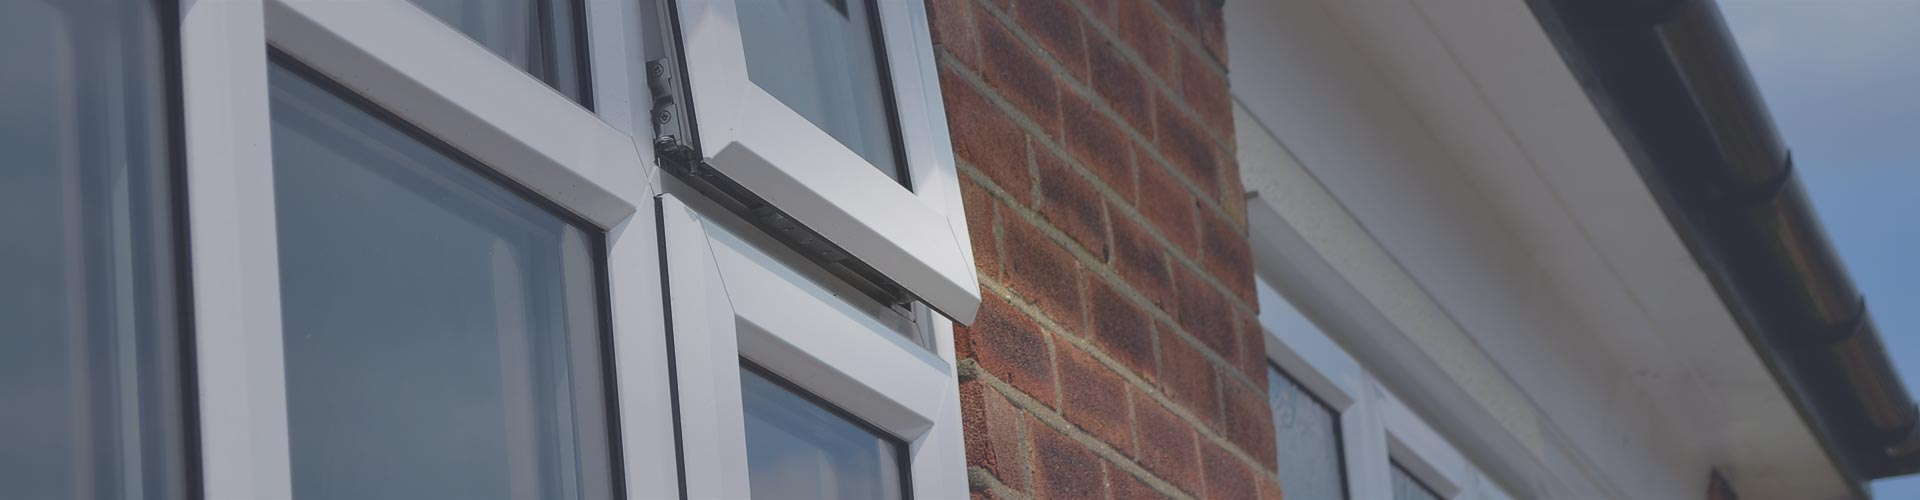 uPVC Window and Doors